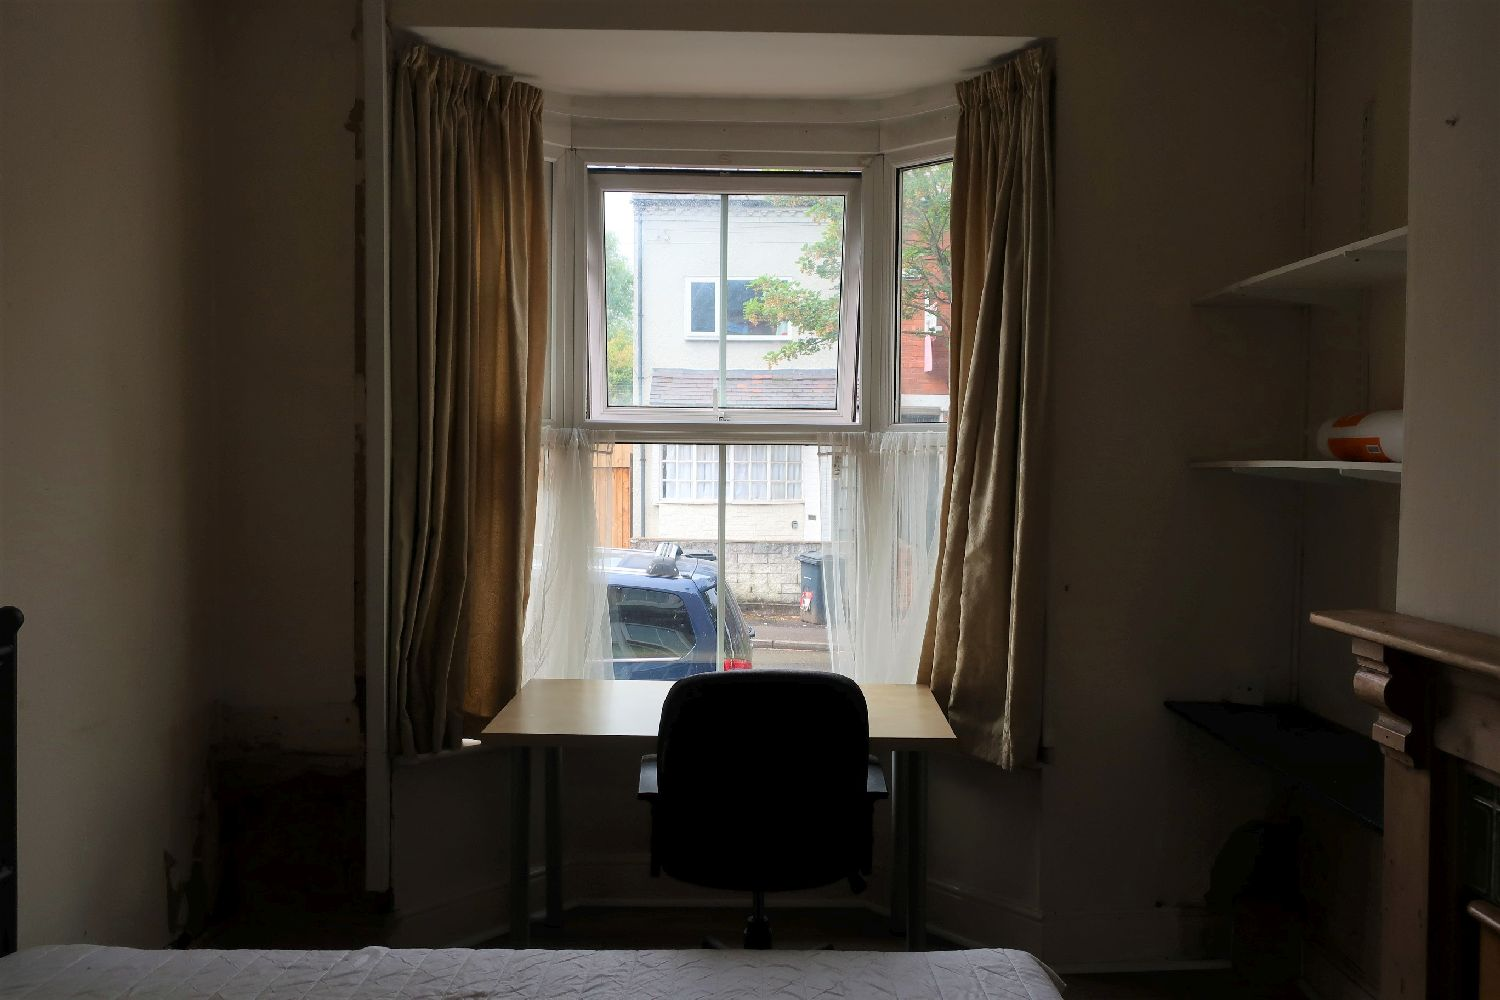 3 Bedrooms House Share for rent in Tiverton Road, Selly Oak, West Midlands, B29 6DA